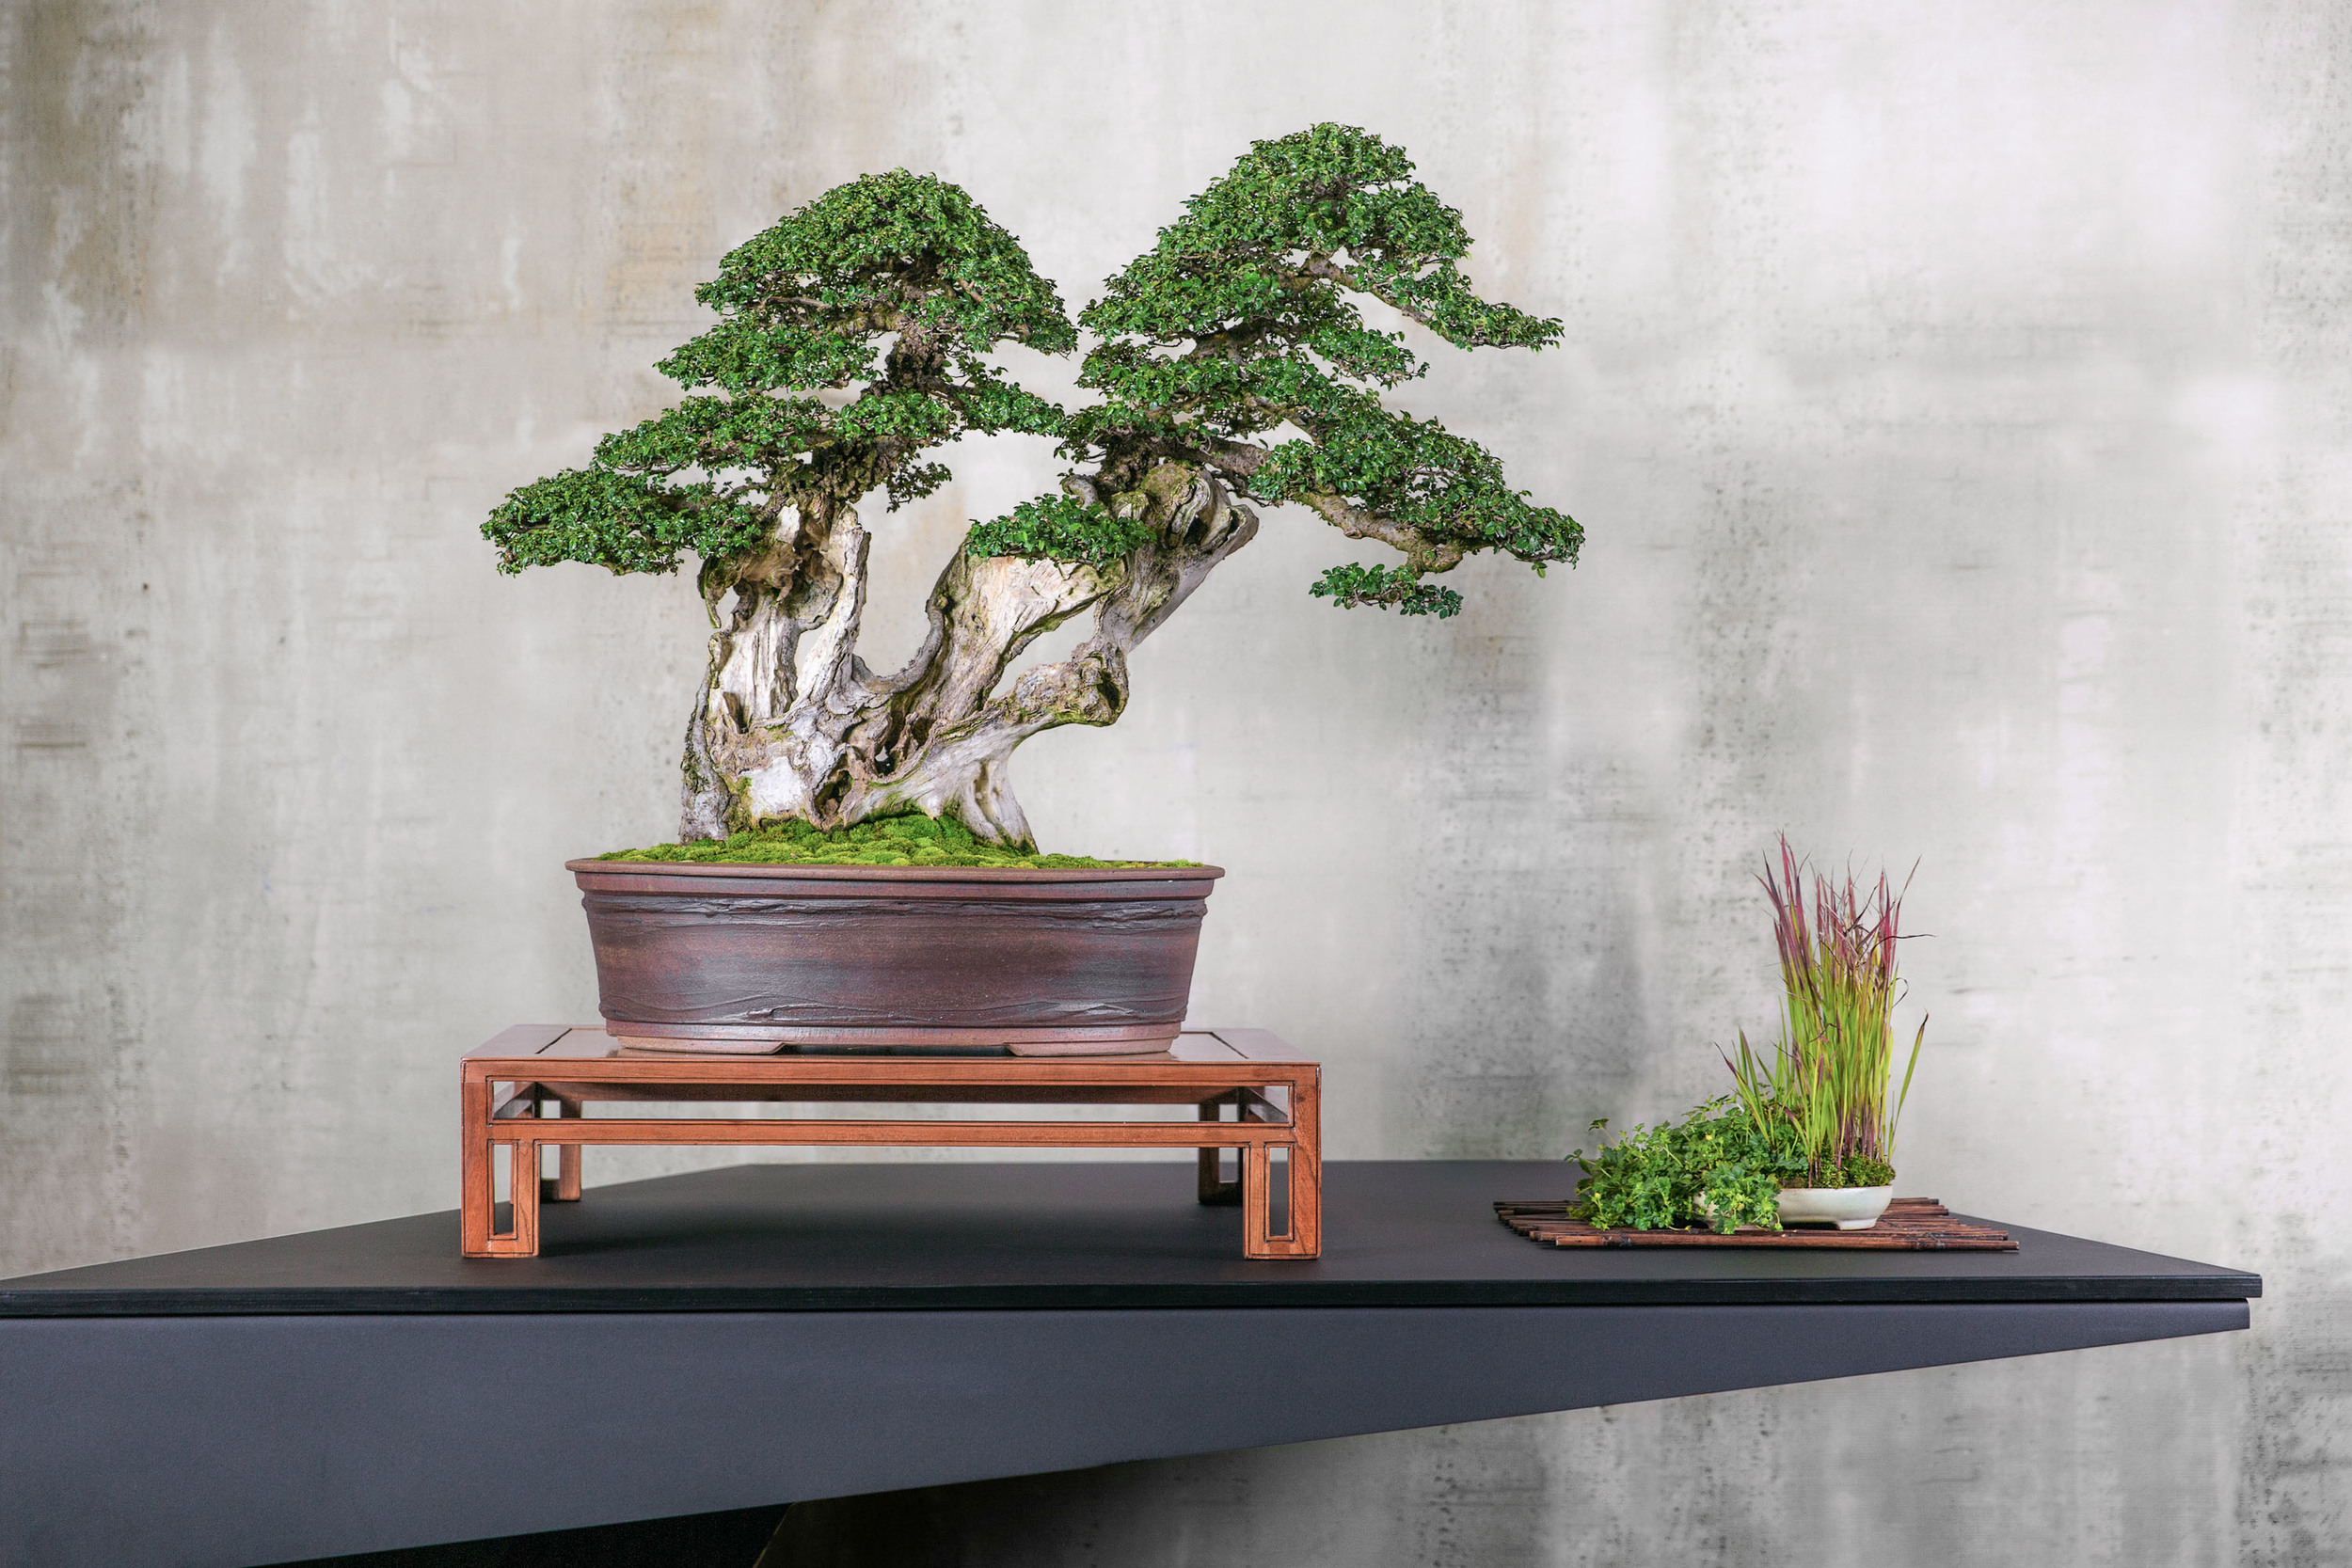 19 CHINESE ELM